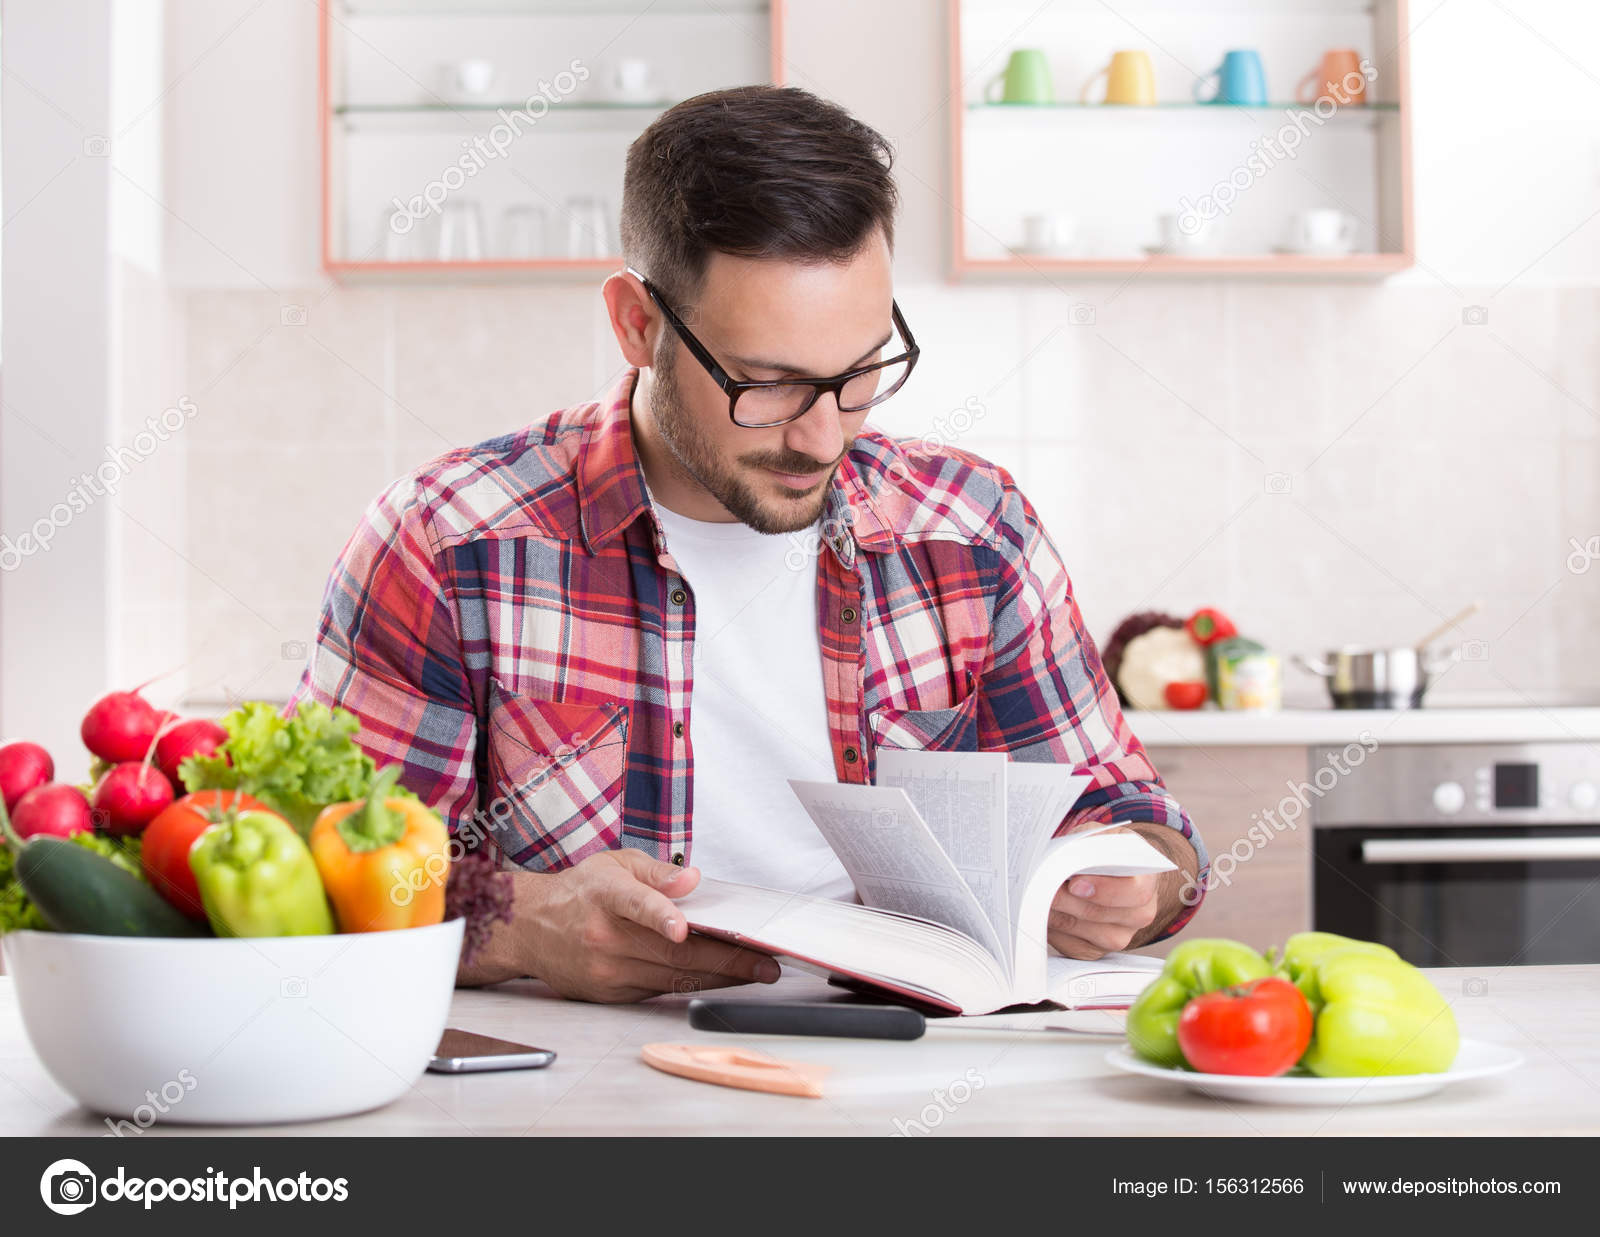 Man reading recipe book in kitchen stock photo budabar 156312566 man reading recipe book in kitchen stock photo forumfinder Image collections